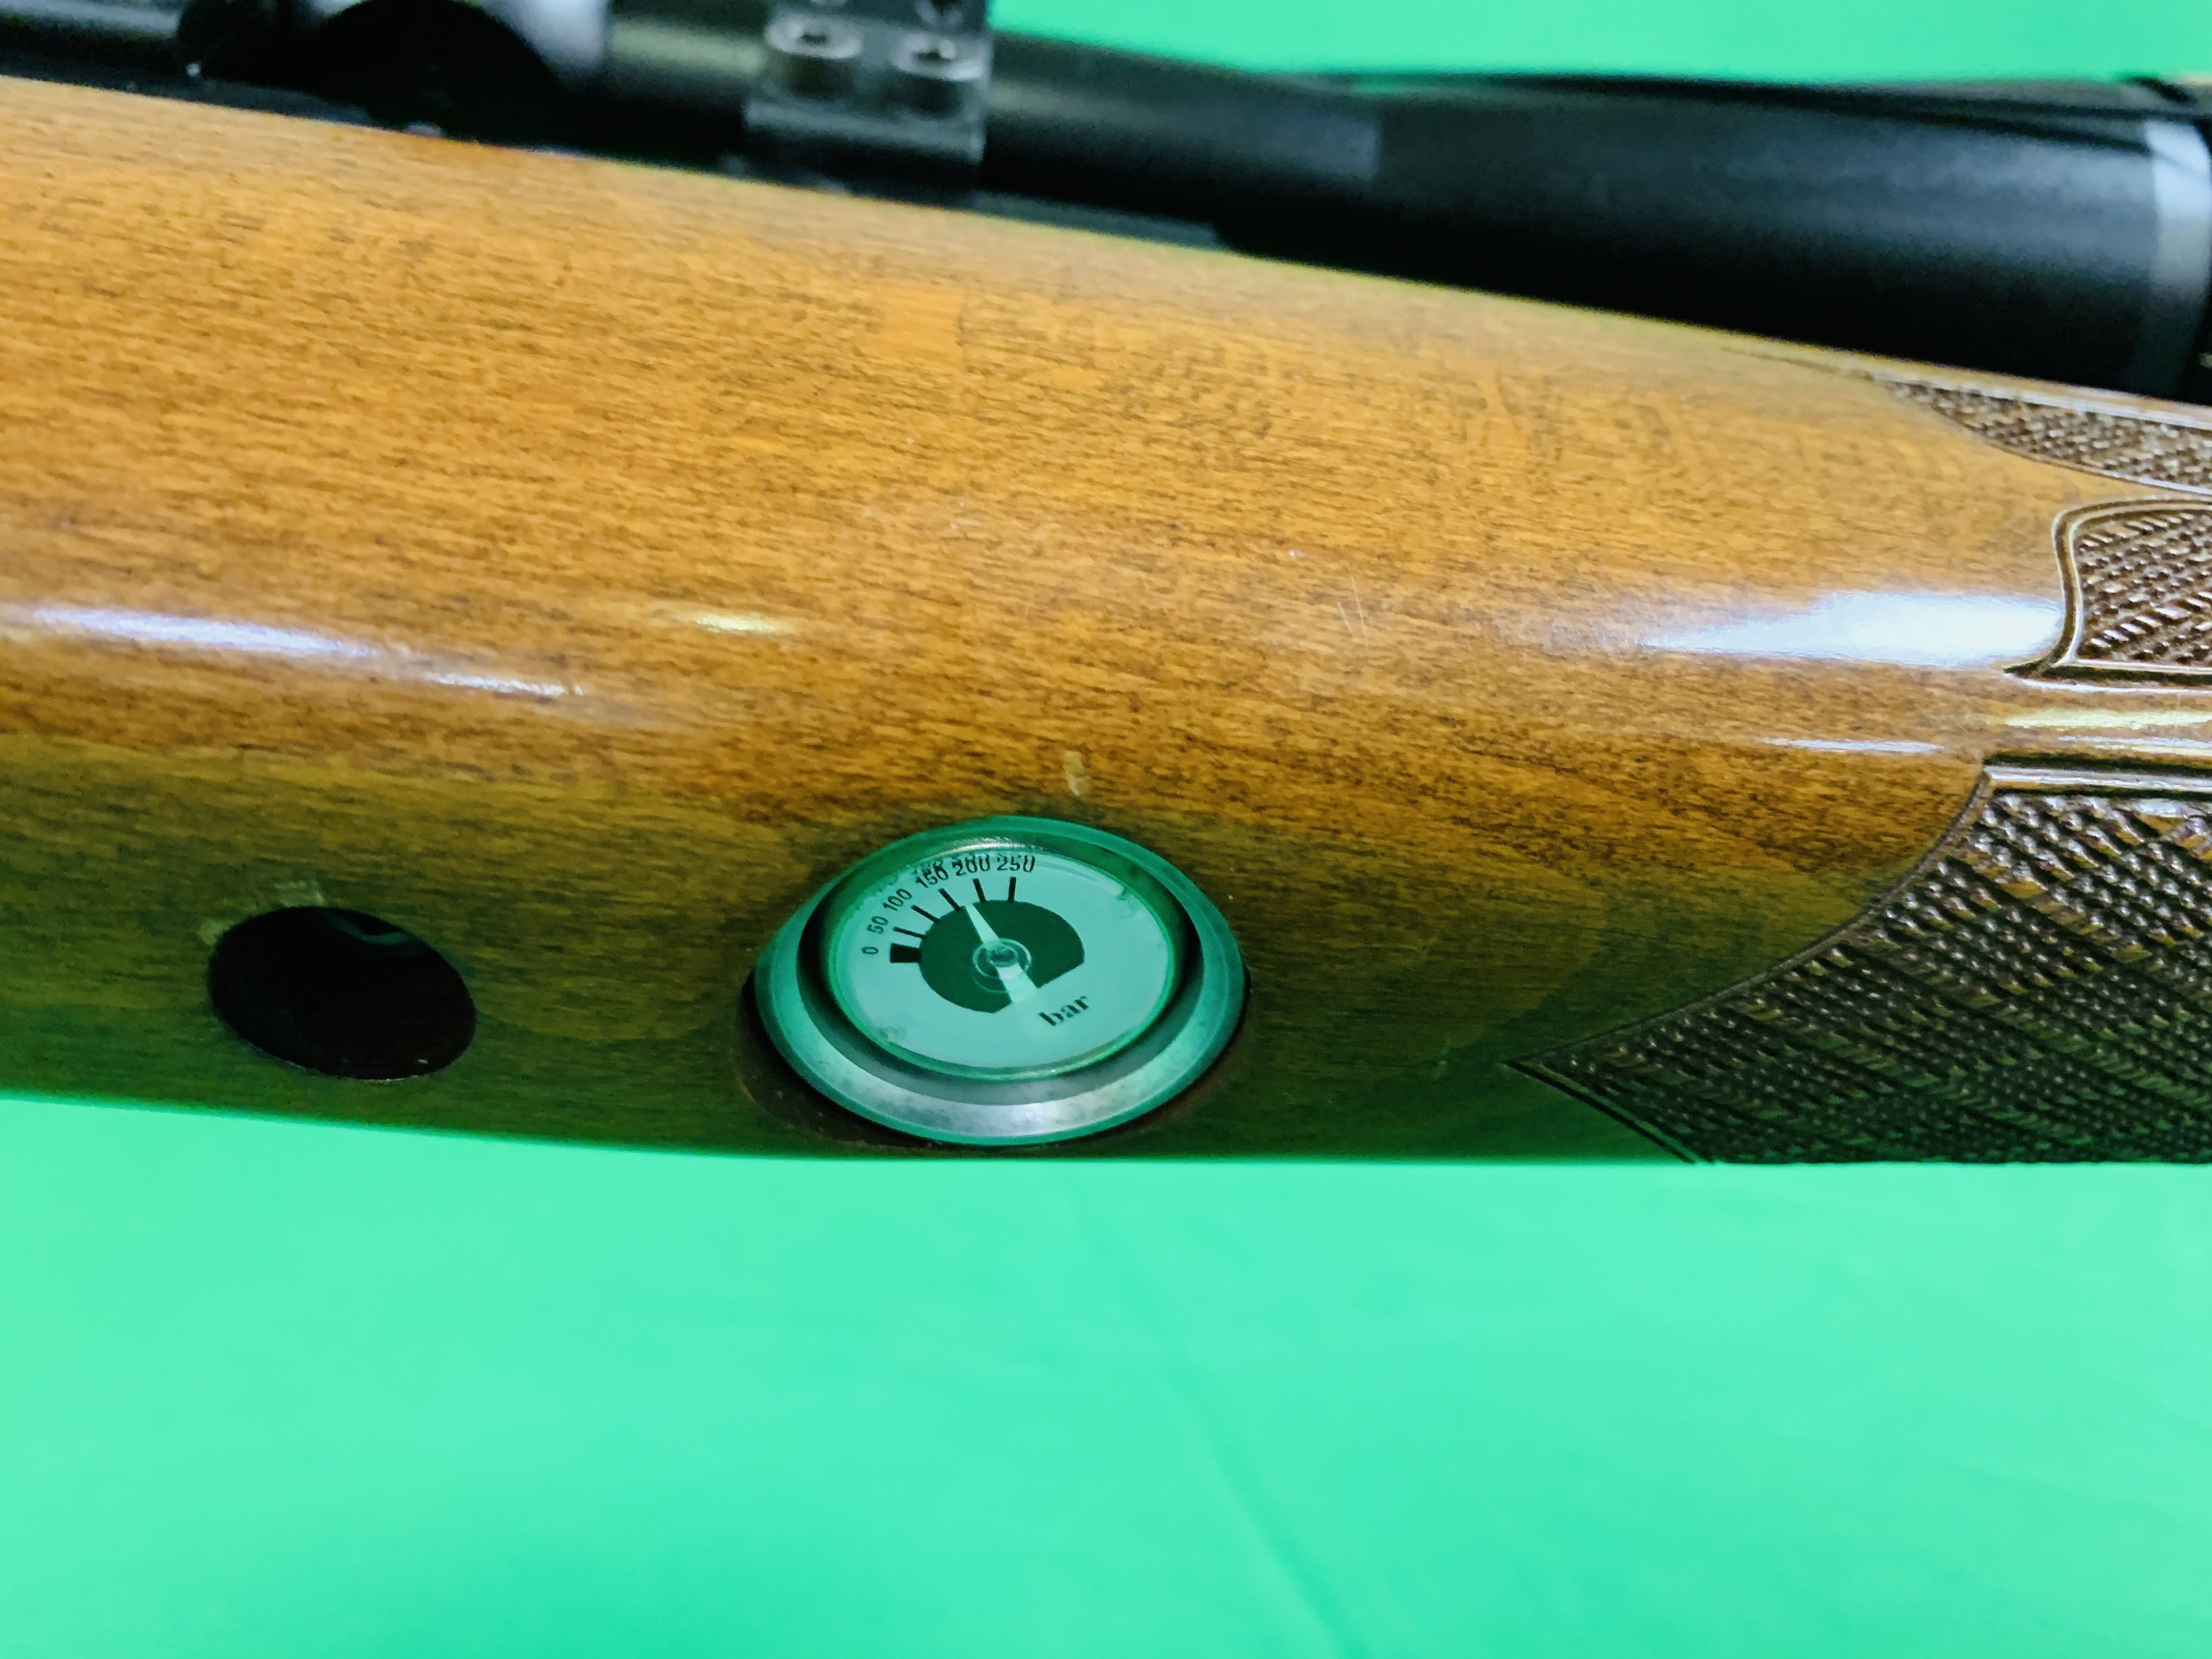 AIR ARMS S400 CLASSIC .177 BOLT ACTION PCP AIR RIFLE FITTED WITH BONUS 6. - Image 17 of 17